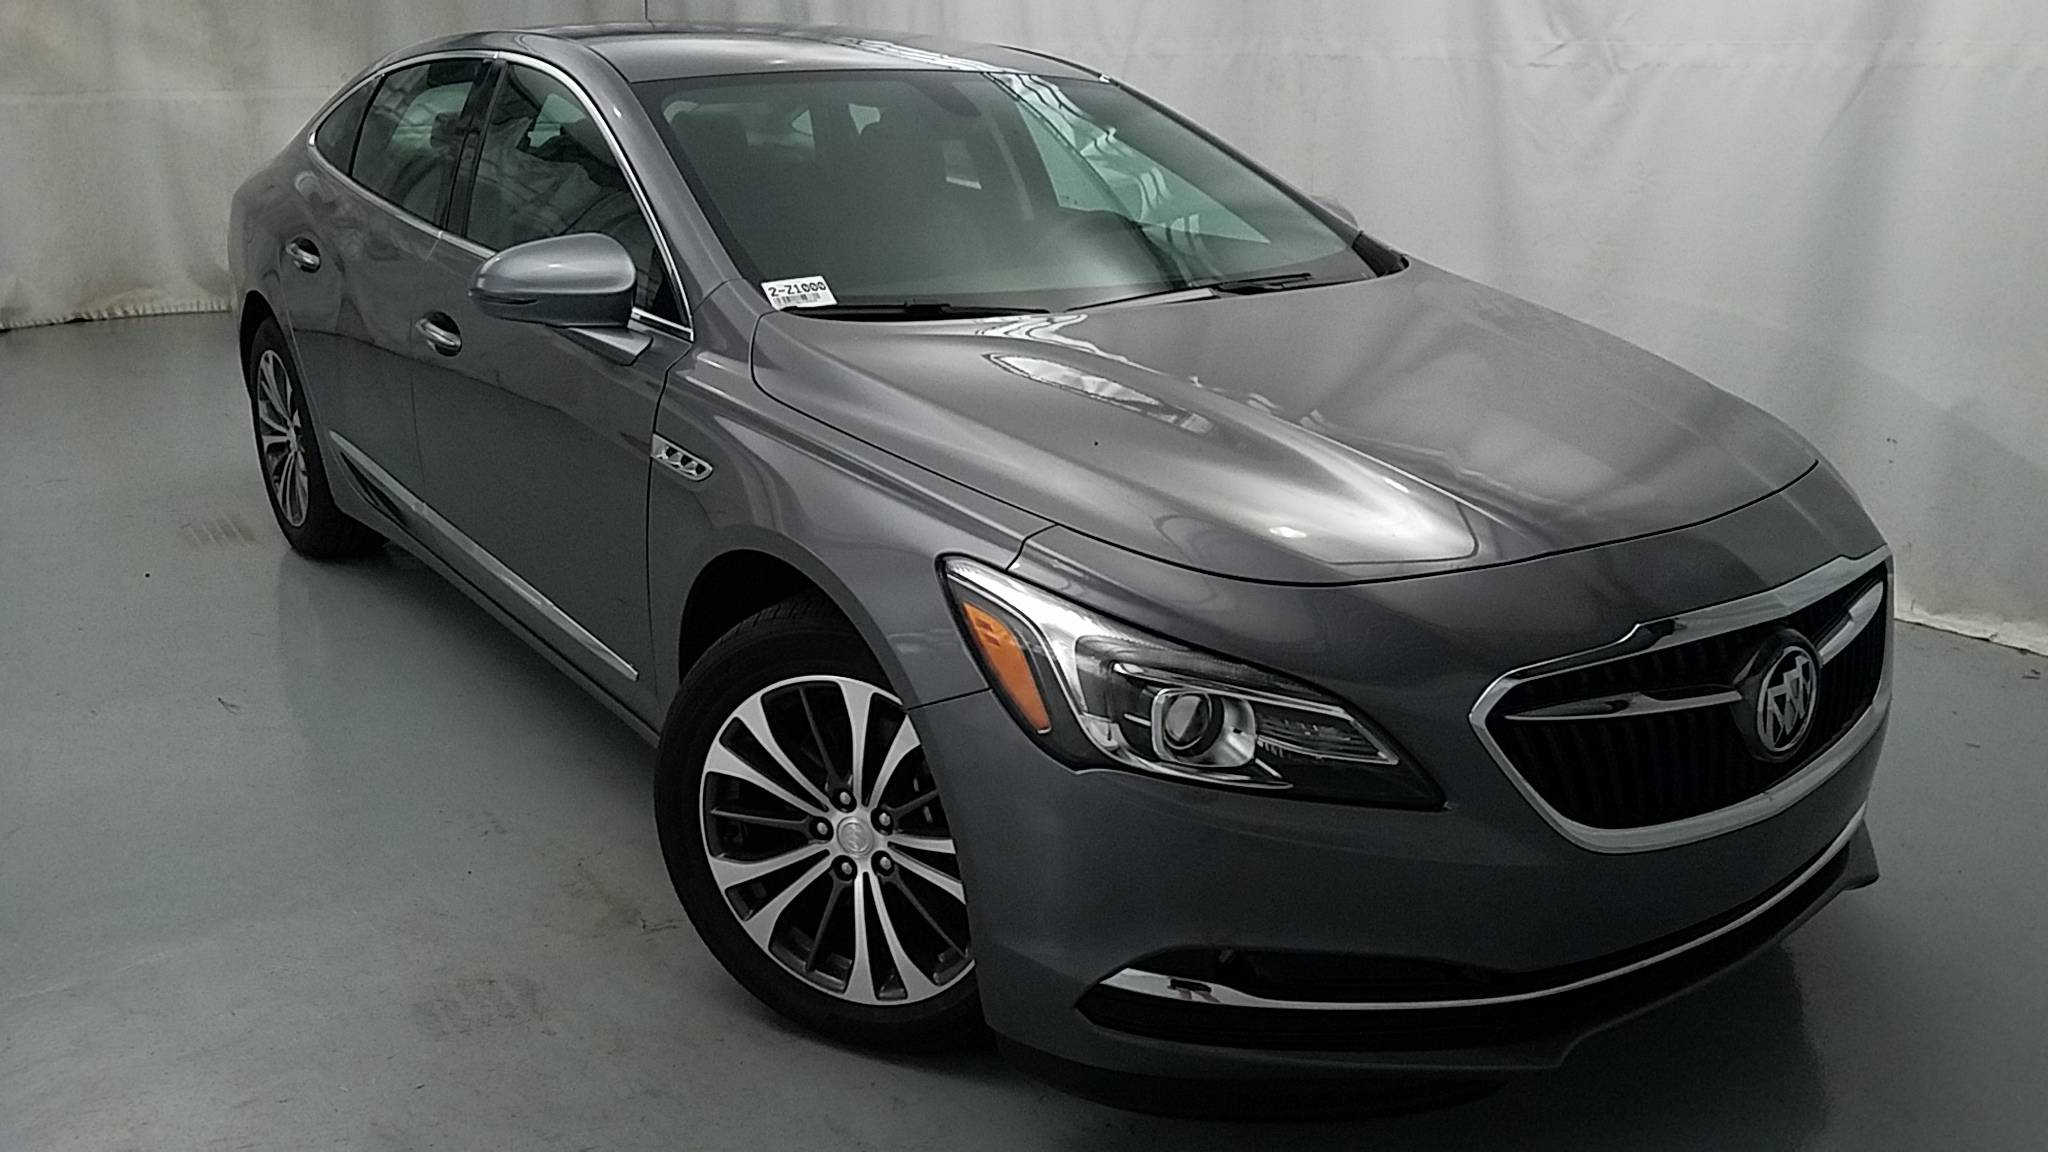 Buick LaCrosse: Services Not Included in Roadside Assistance